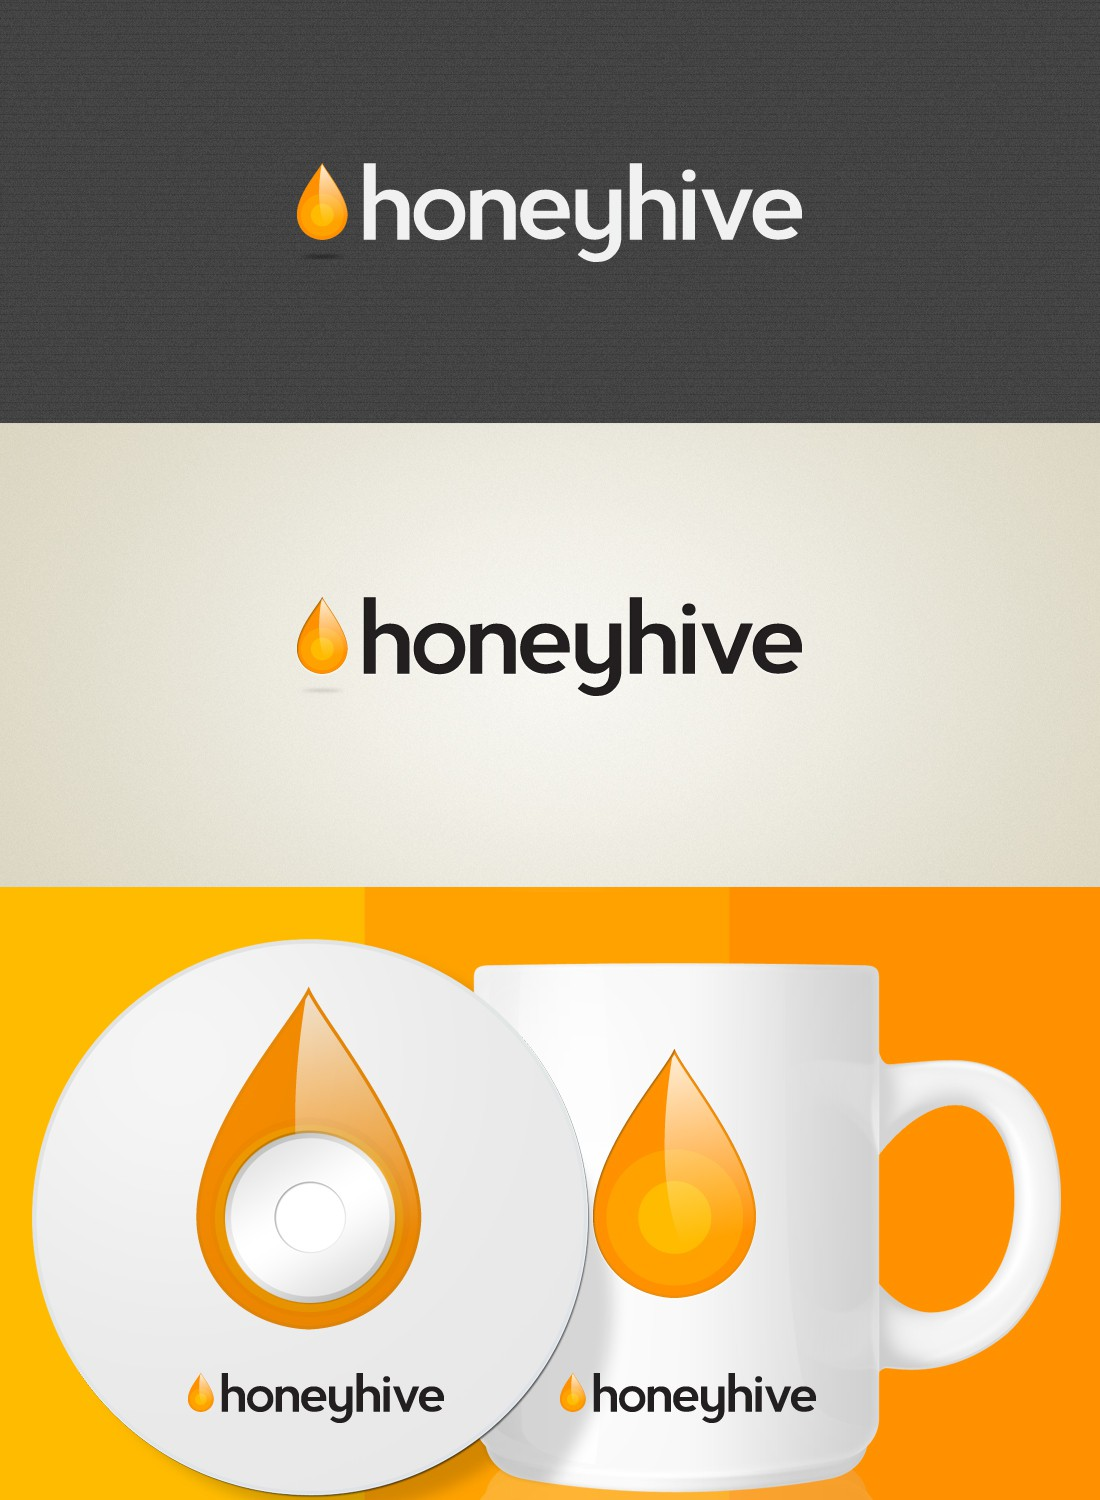 honeyhive needs a new logo